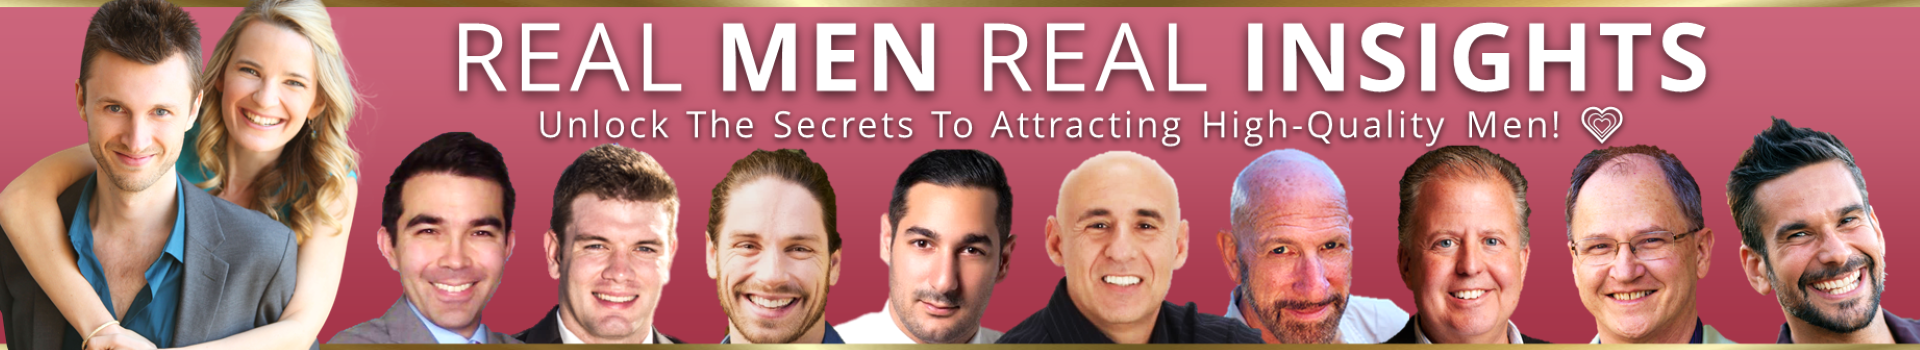 Real Men Real Insights 2021 Banner Large 4 - Real Men Real Insights Opt-In